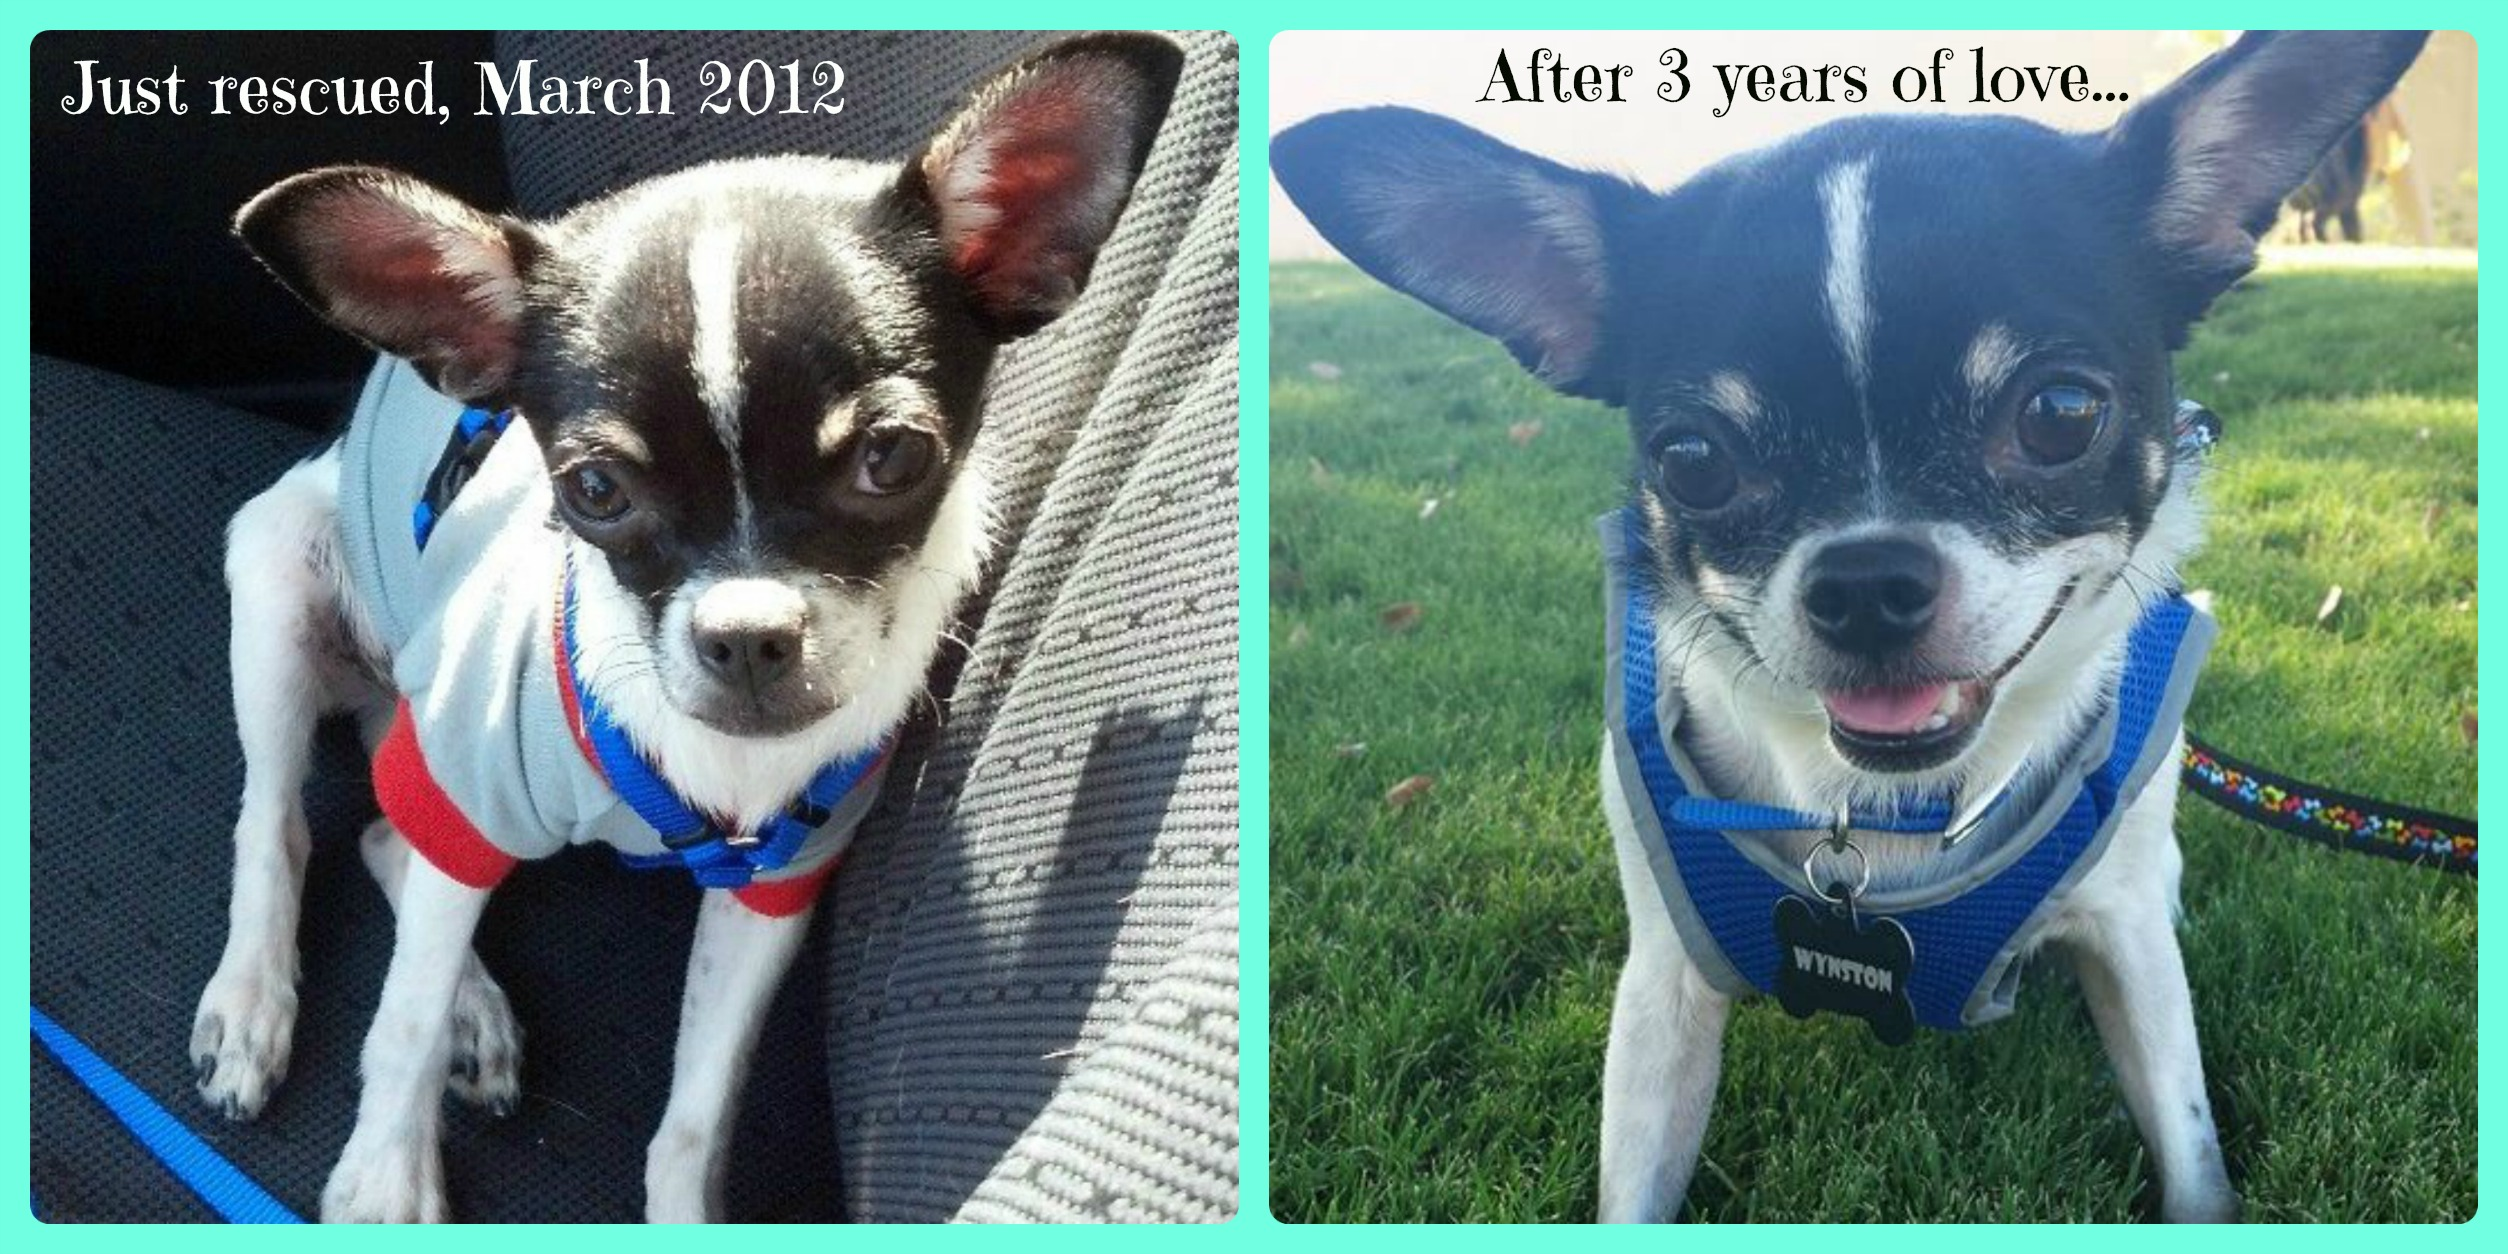 Left: a few weeks after rescuing Wynston from the puppy mill. Right: after years of love!